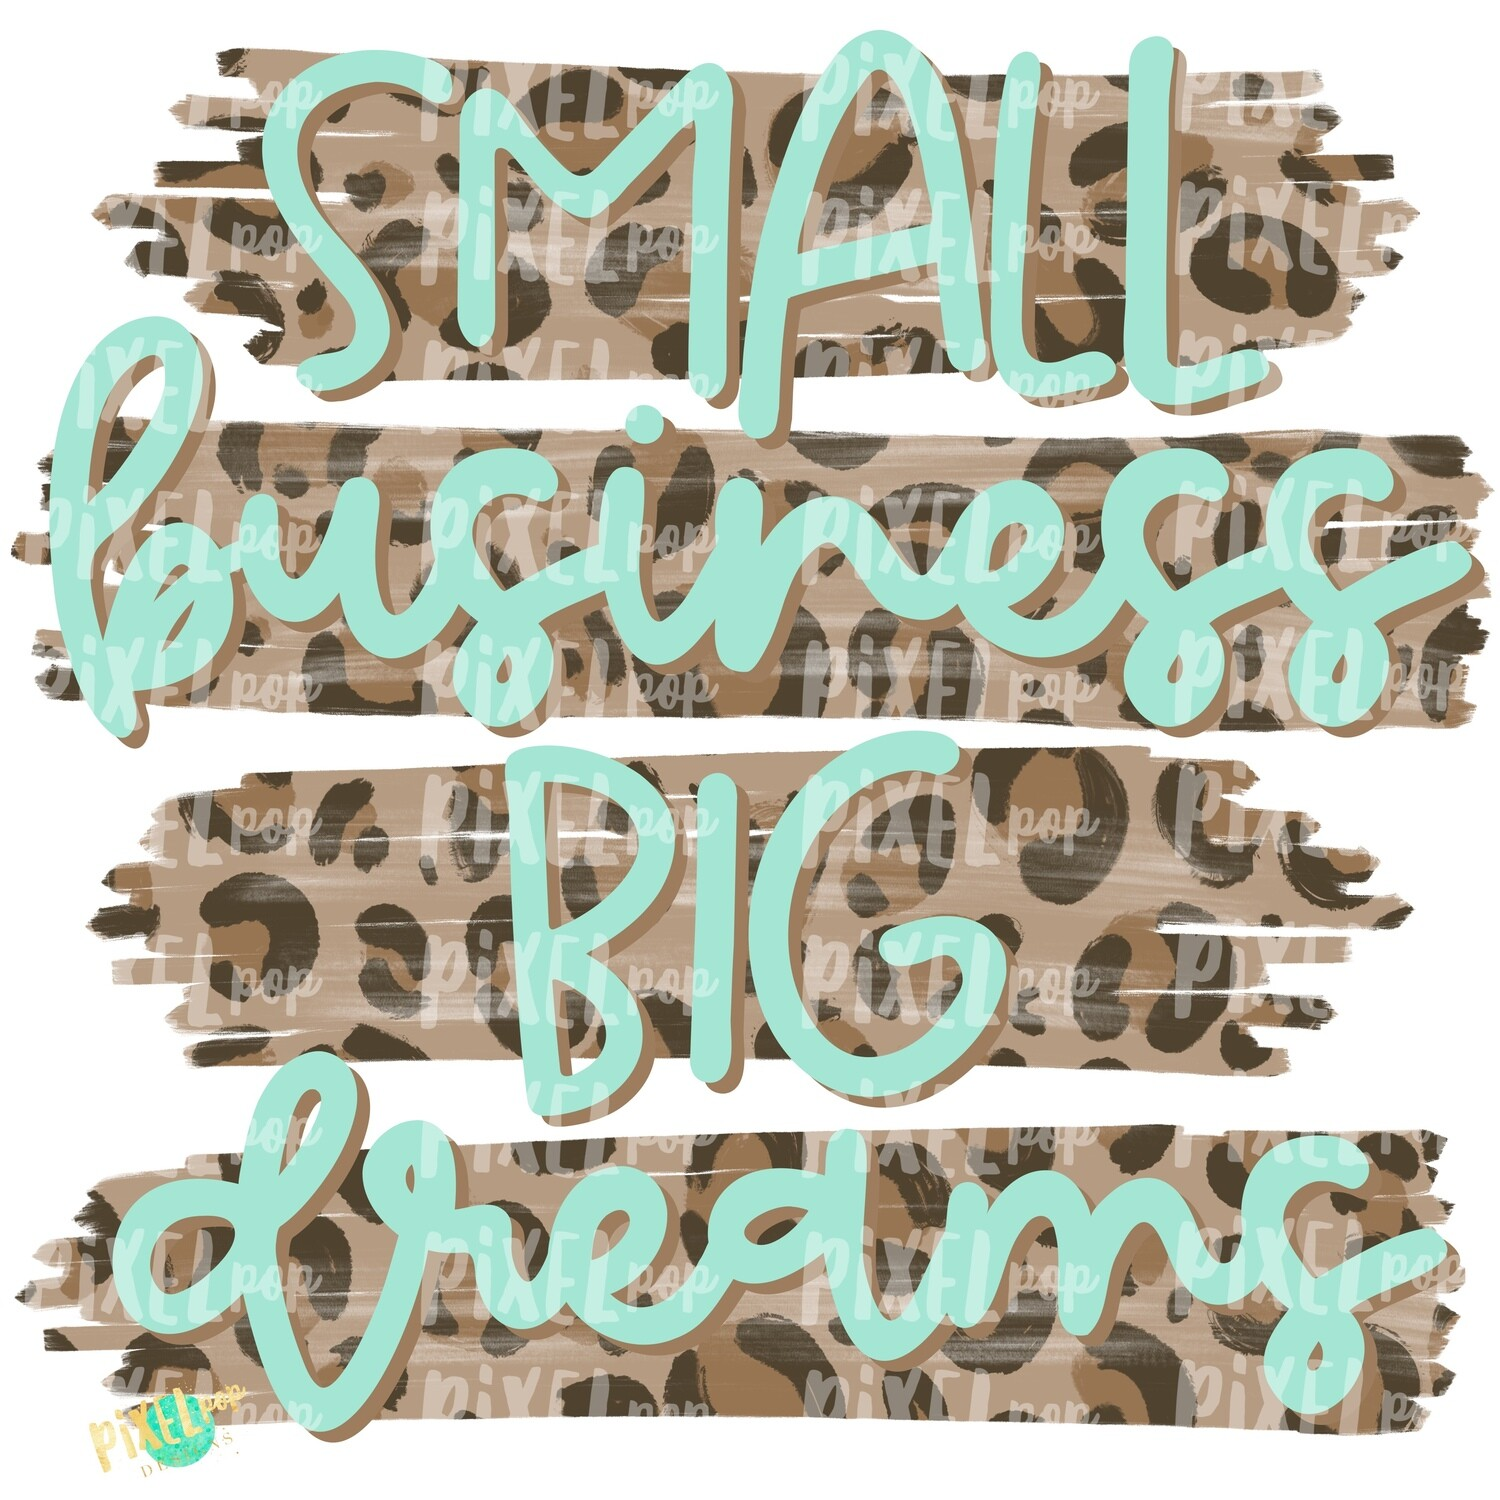 Small Business Big Dreams Leopard PNG | Business Clip Art | Small Business Marketing Image | Small Business Sticker Art | Business Art